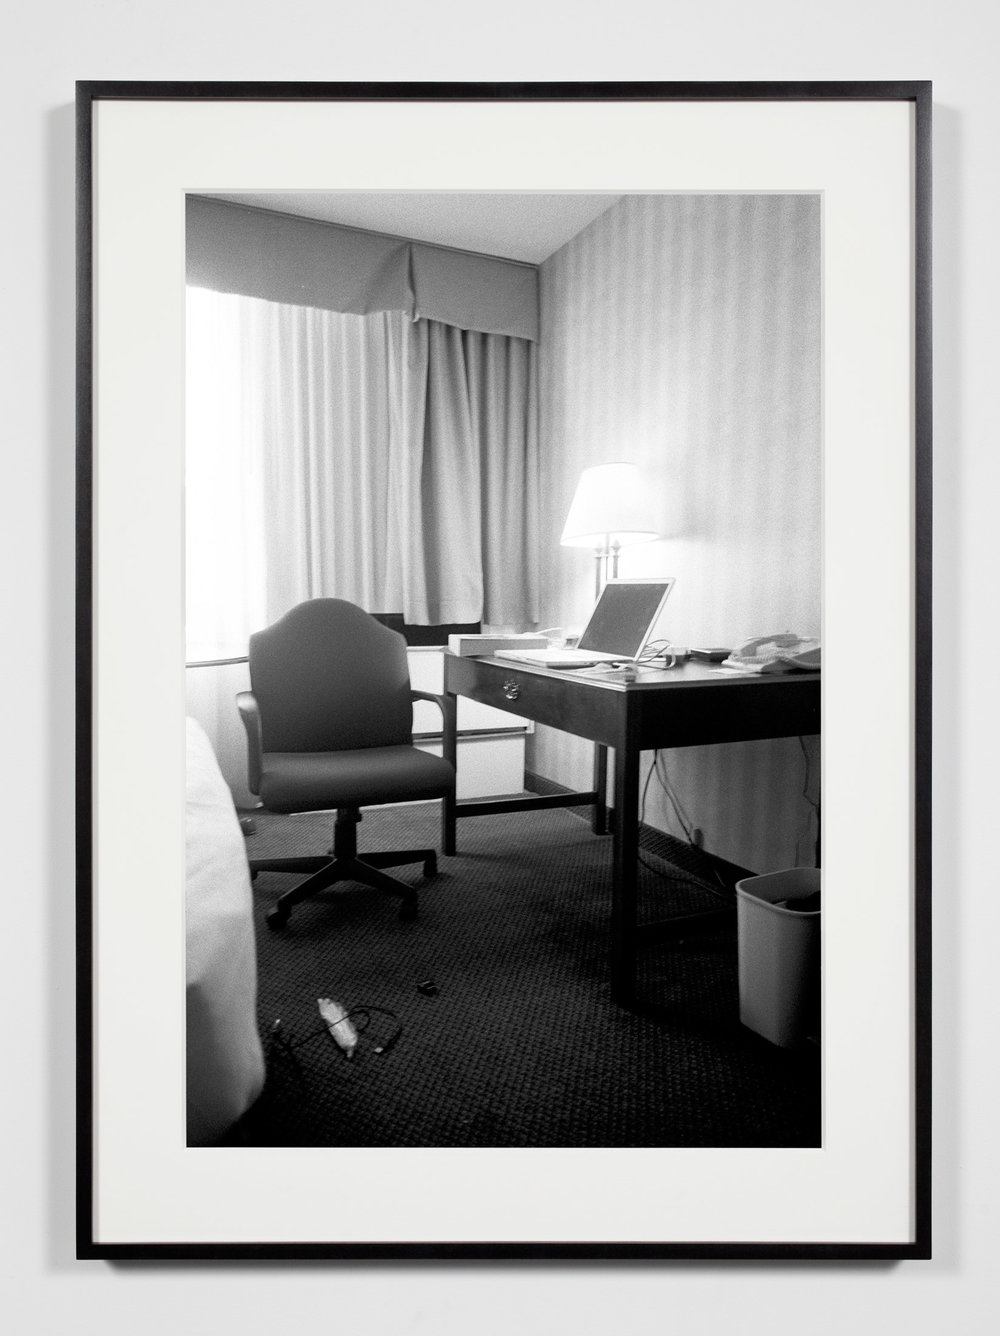 Hotel Room, Washington, District of Columbia, April 24, 2009    2011   Epson Ultrachrome K3 archival ink jet print on Hahnemühle Photo Rag paper  36 3/8 x 26 3/8 inches   A Diagram of Forces, 2011